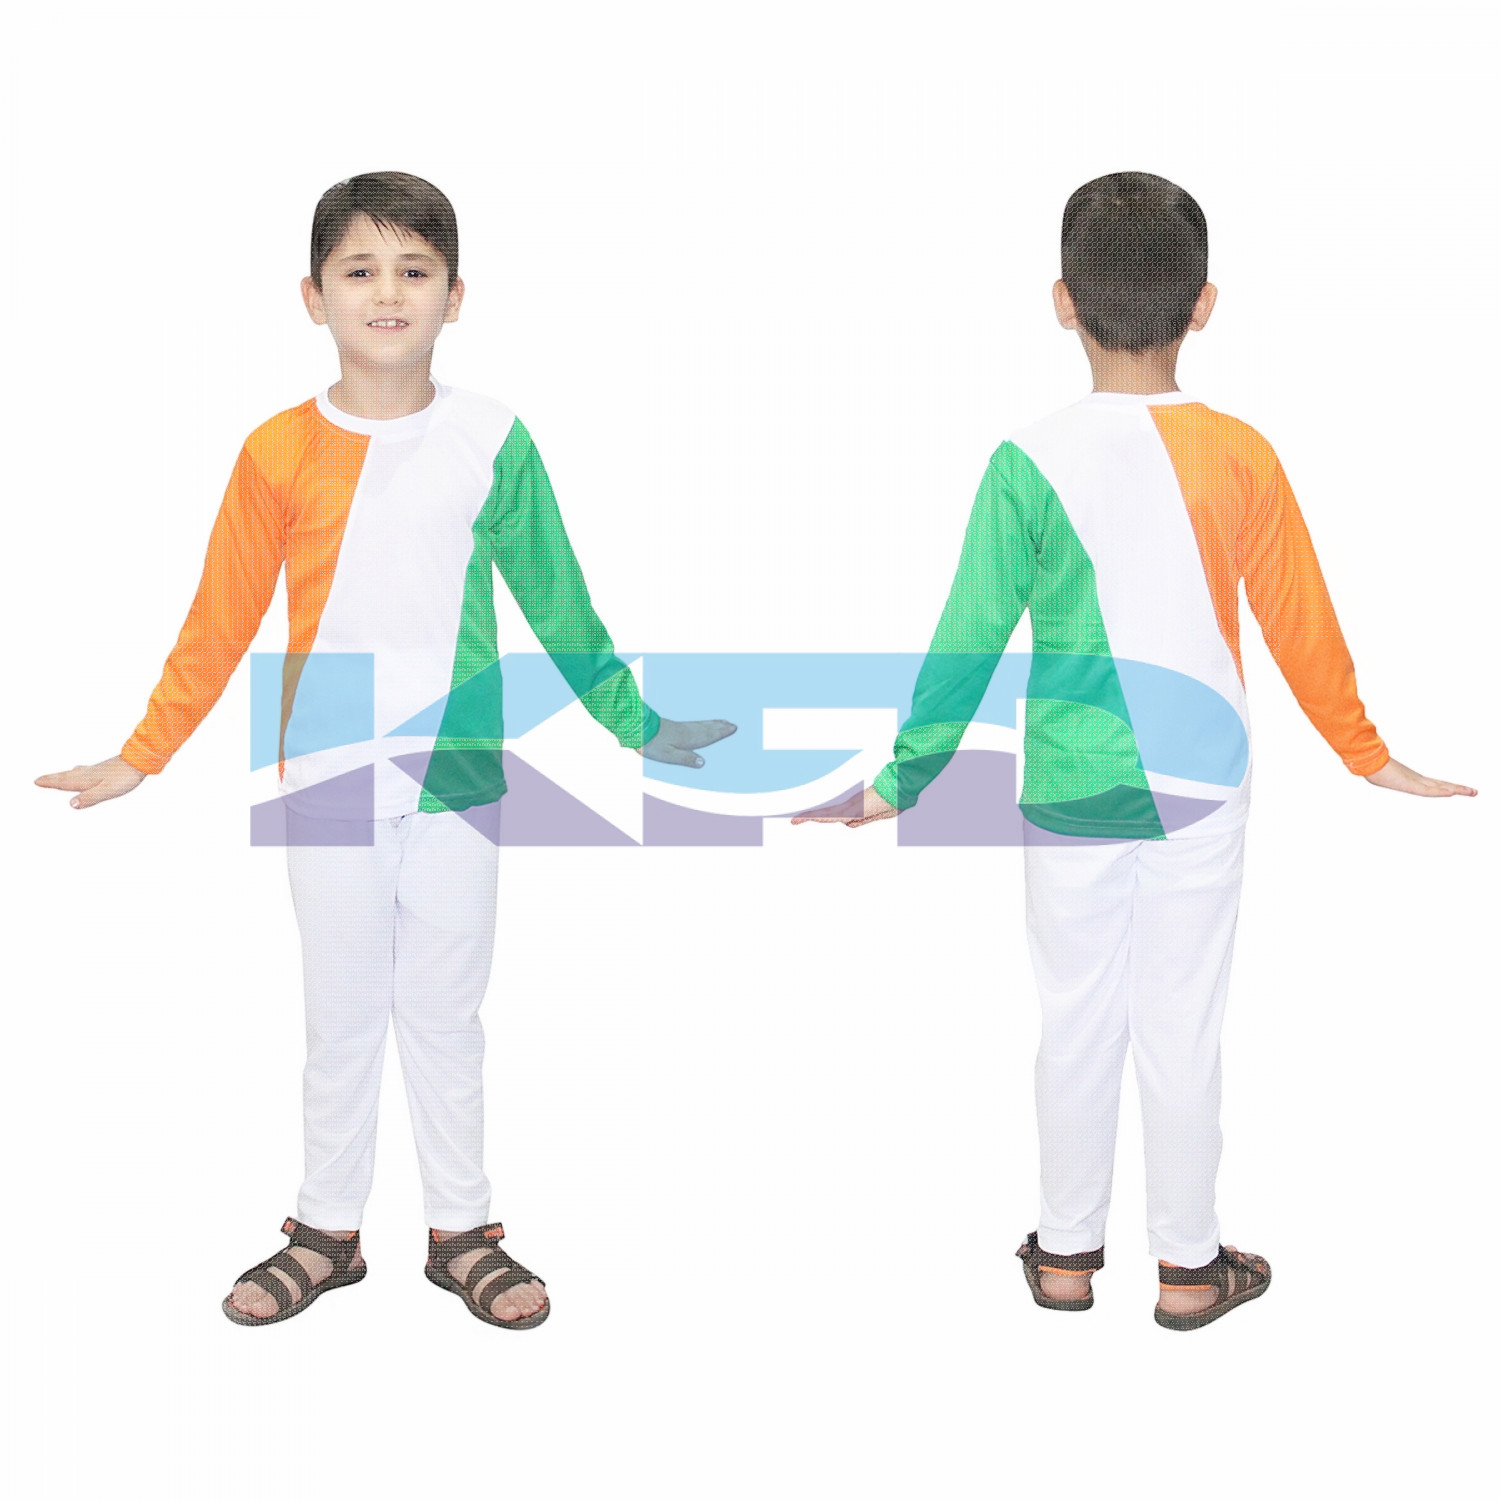 Tri Color Track Suit fancy dress for kids,Western Costume for Annual function/Theme Party/Competition/Stage Shows/Birthday Party Dress